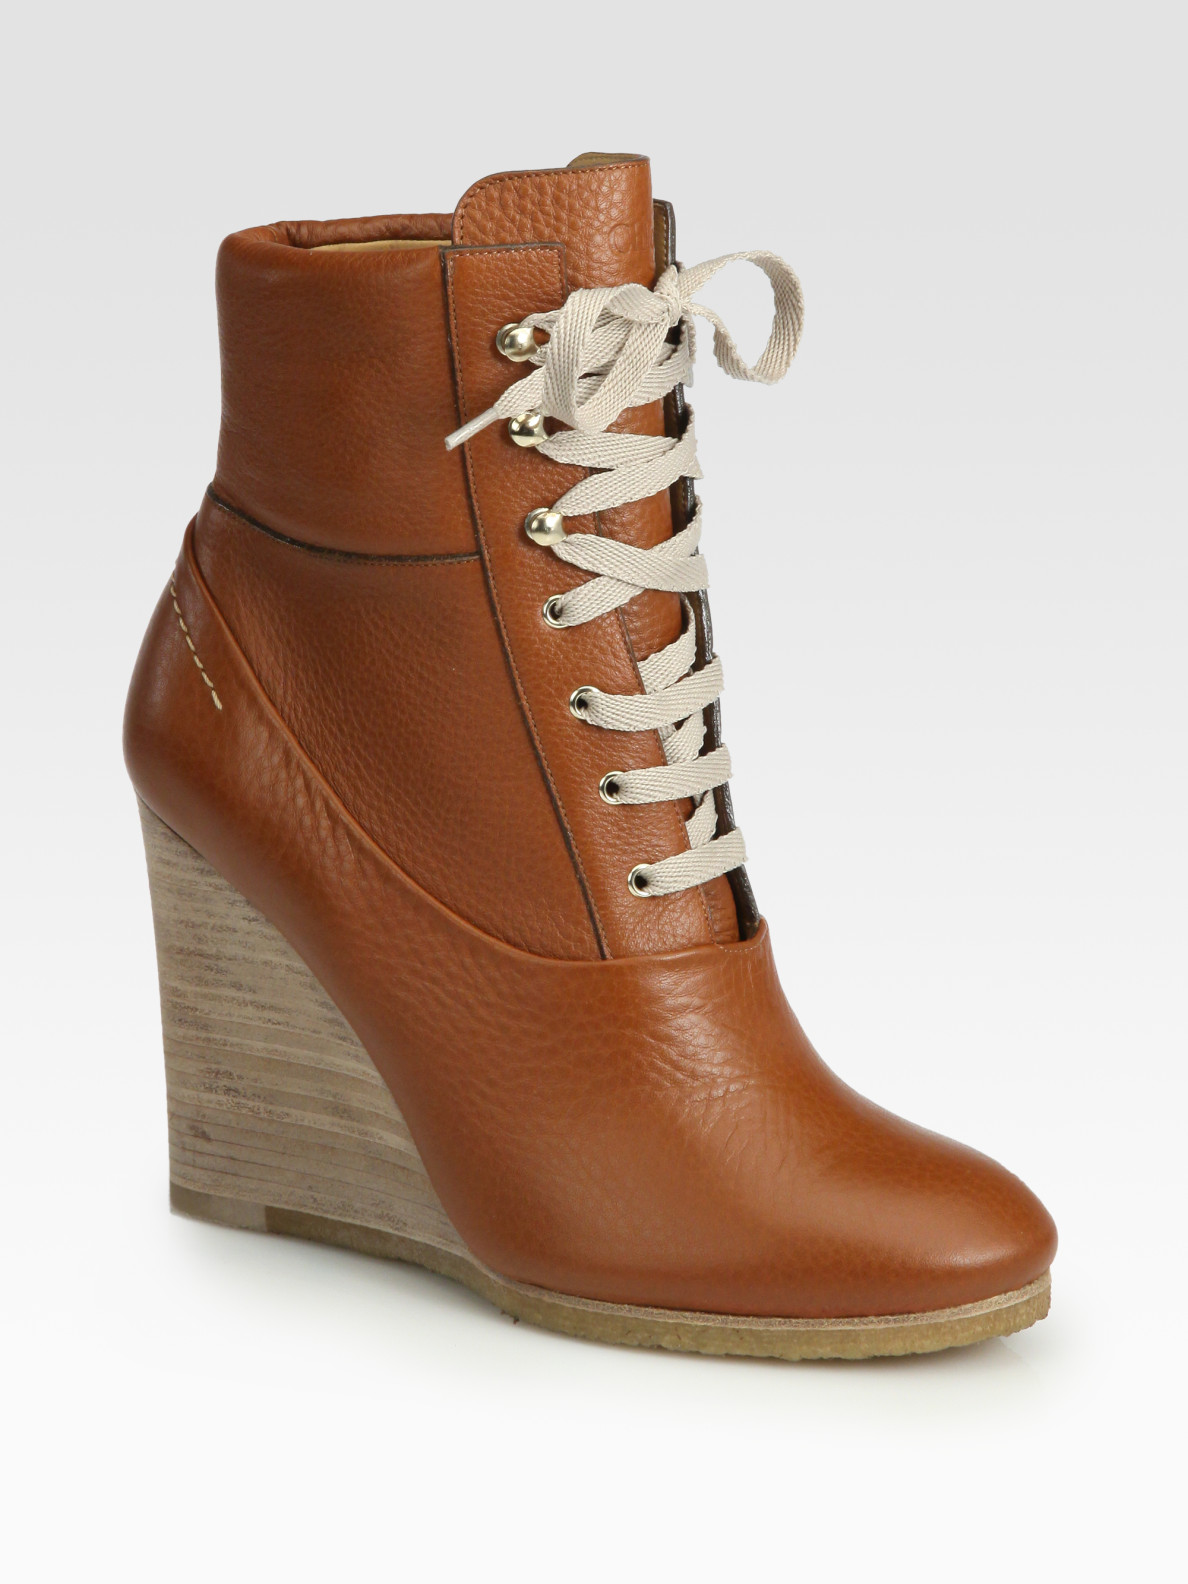 de657f5c799 Lyst - Chloé Leather Laceup Wedge Ankle Boots in Brown